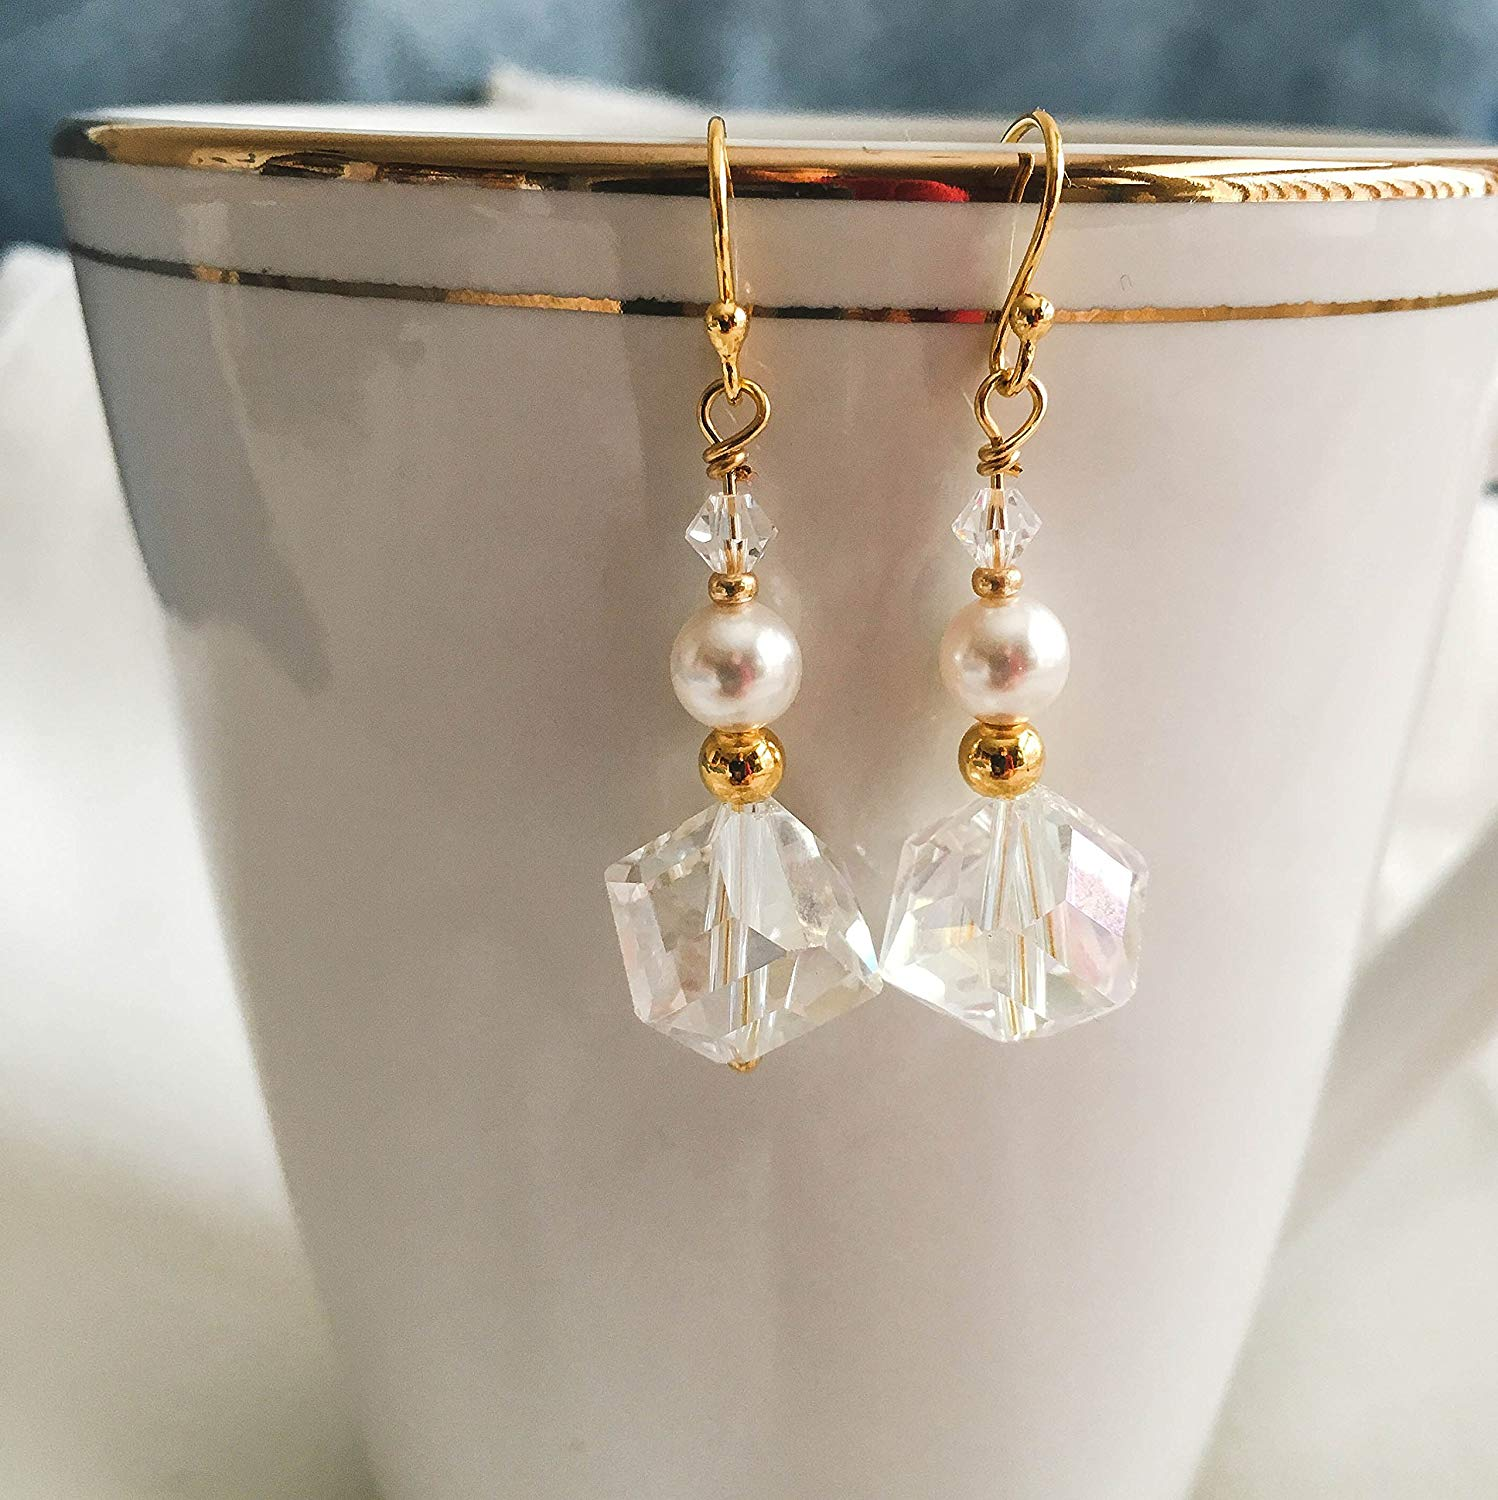 bfef0f196 Get Quotations · Pearl and Crystal Bridesmaid Earrings; Special Occasion Dangle  Earrings; Jewelry for Wedding or Prom